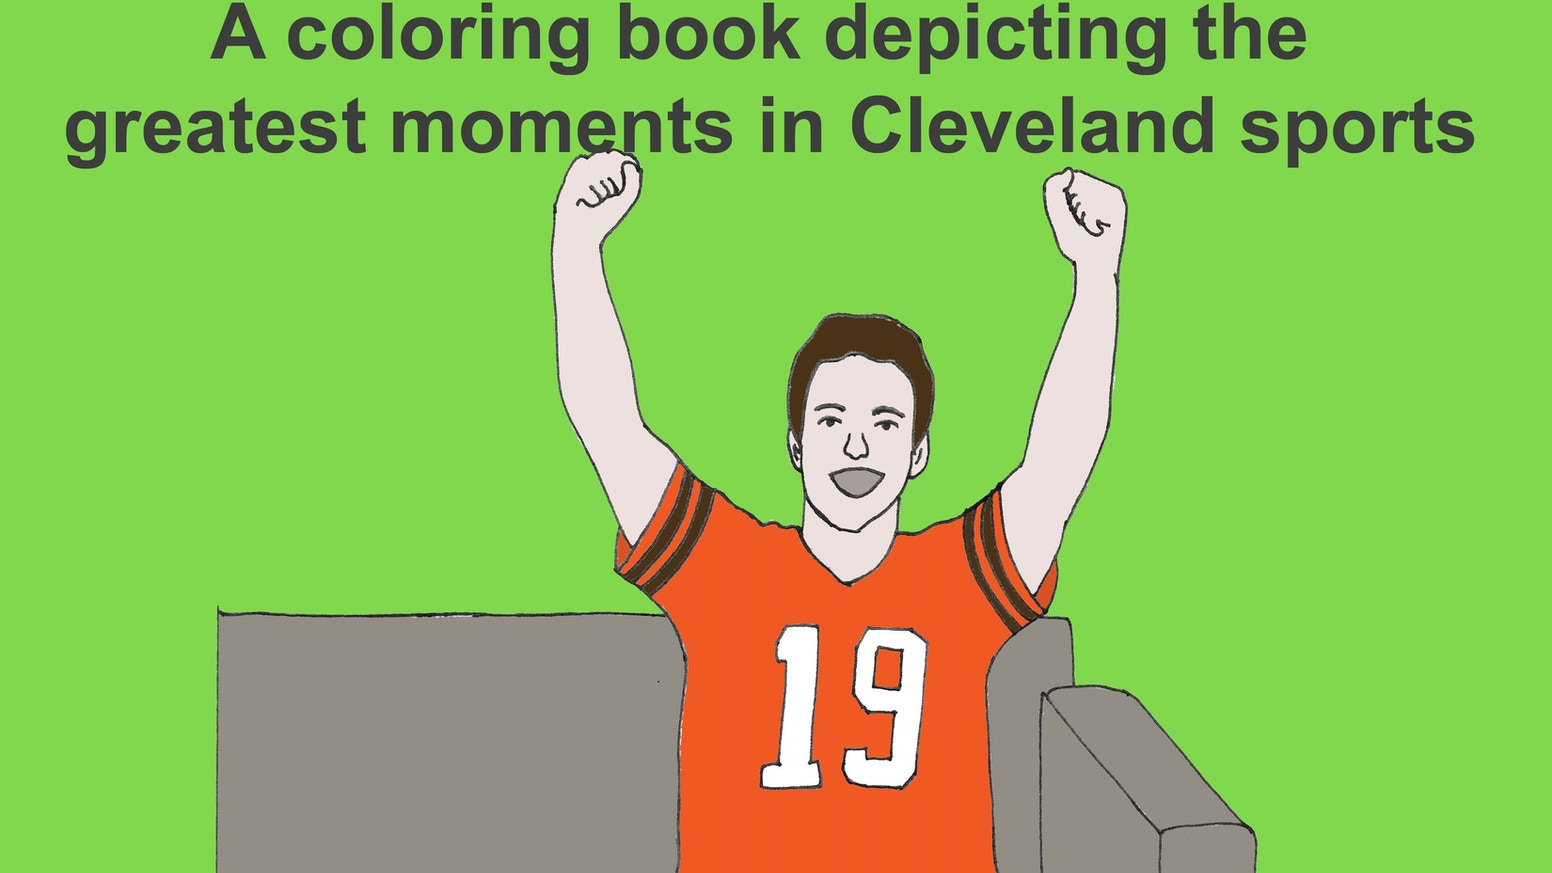 a coloring book for the whole family depicting famous moments of glory from cleveland professional - Cleveland Sports Coloring Book